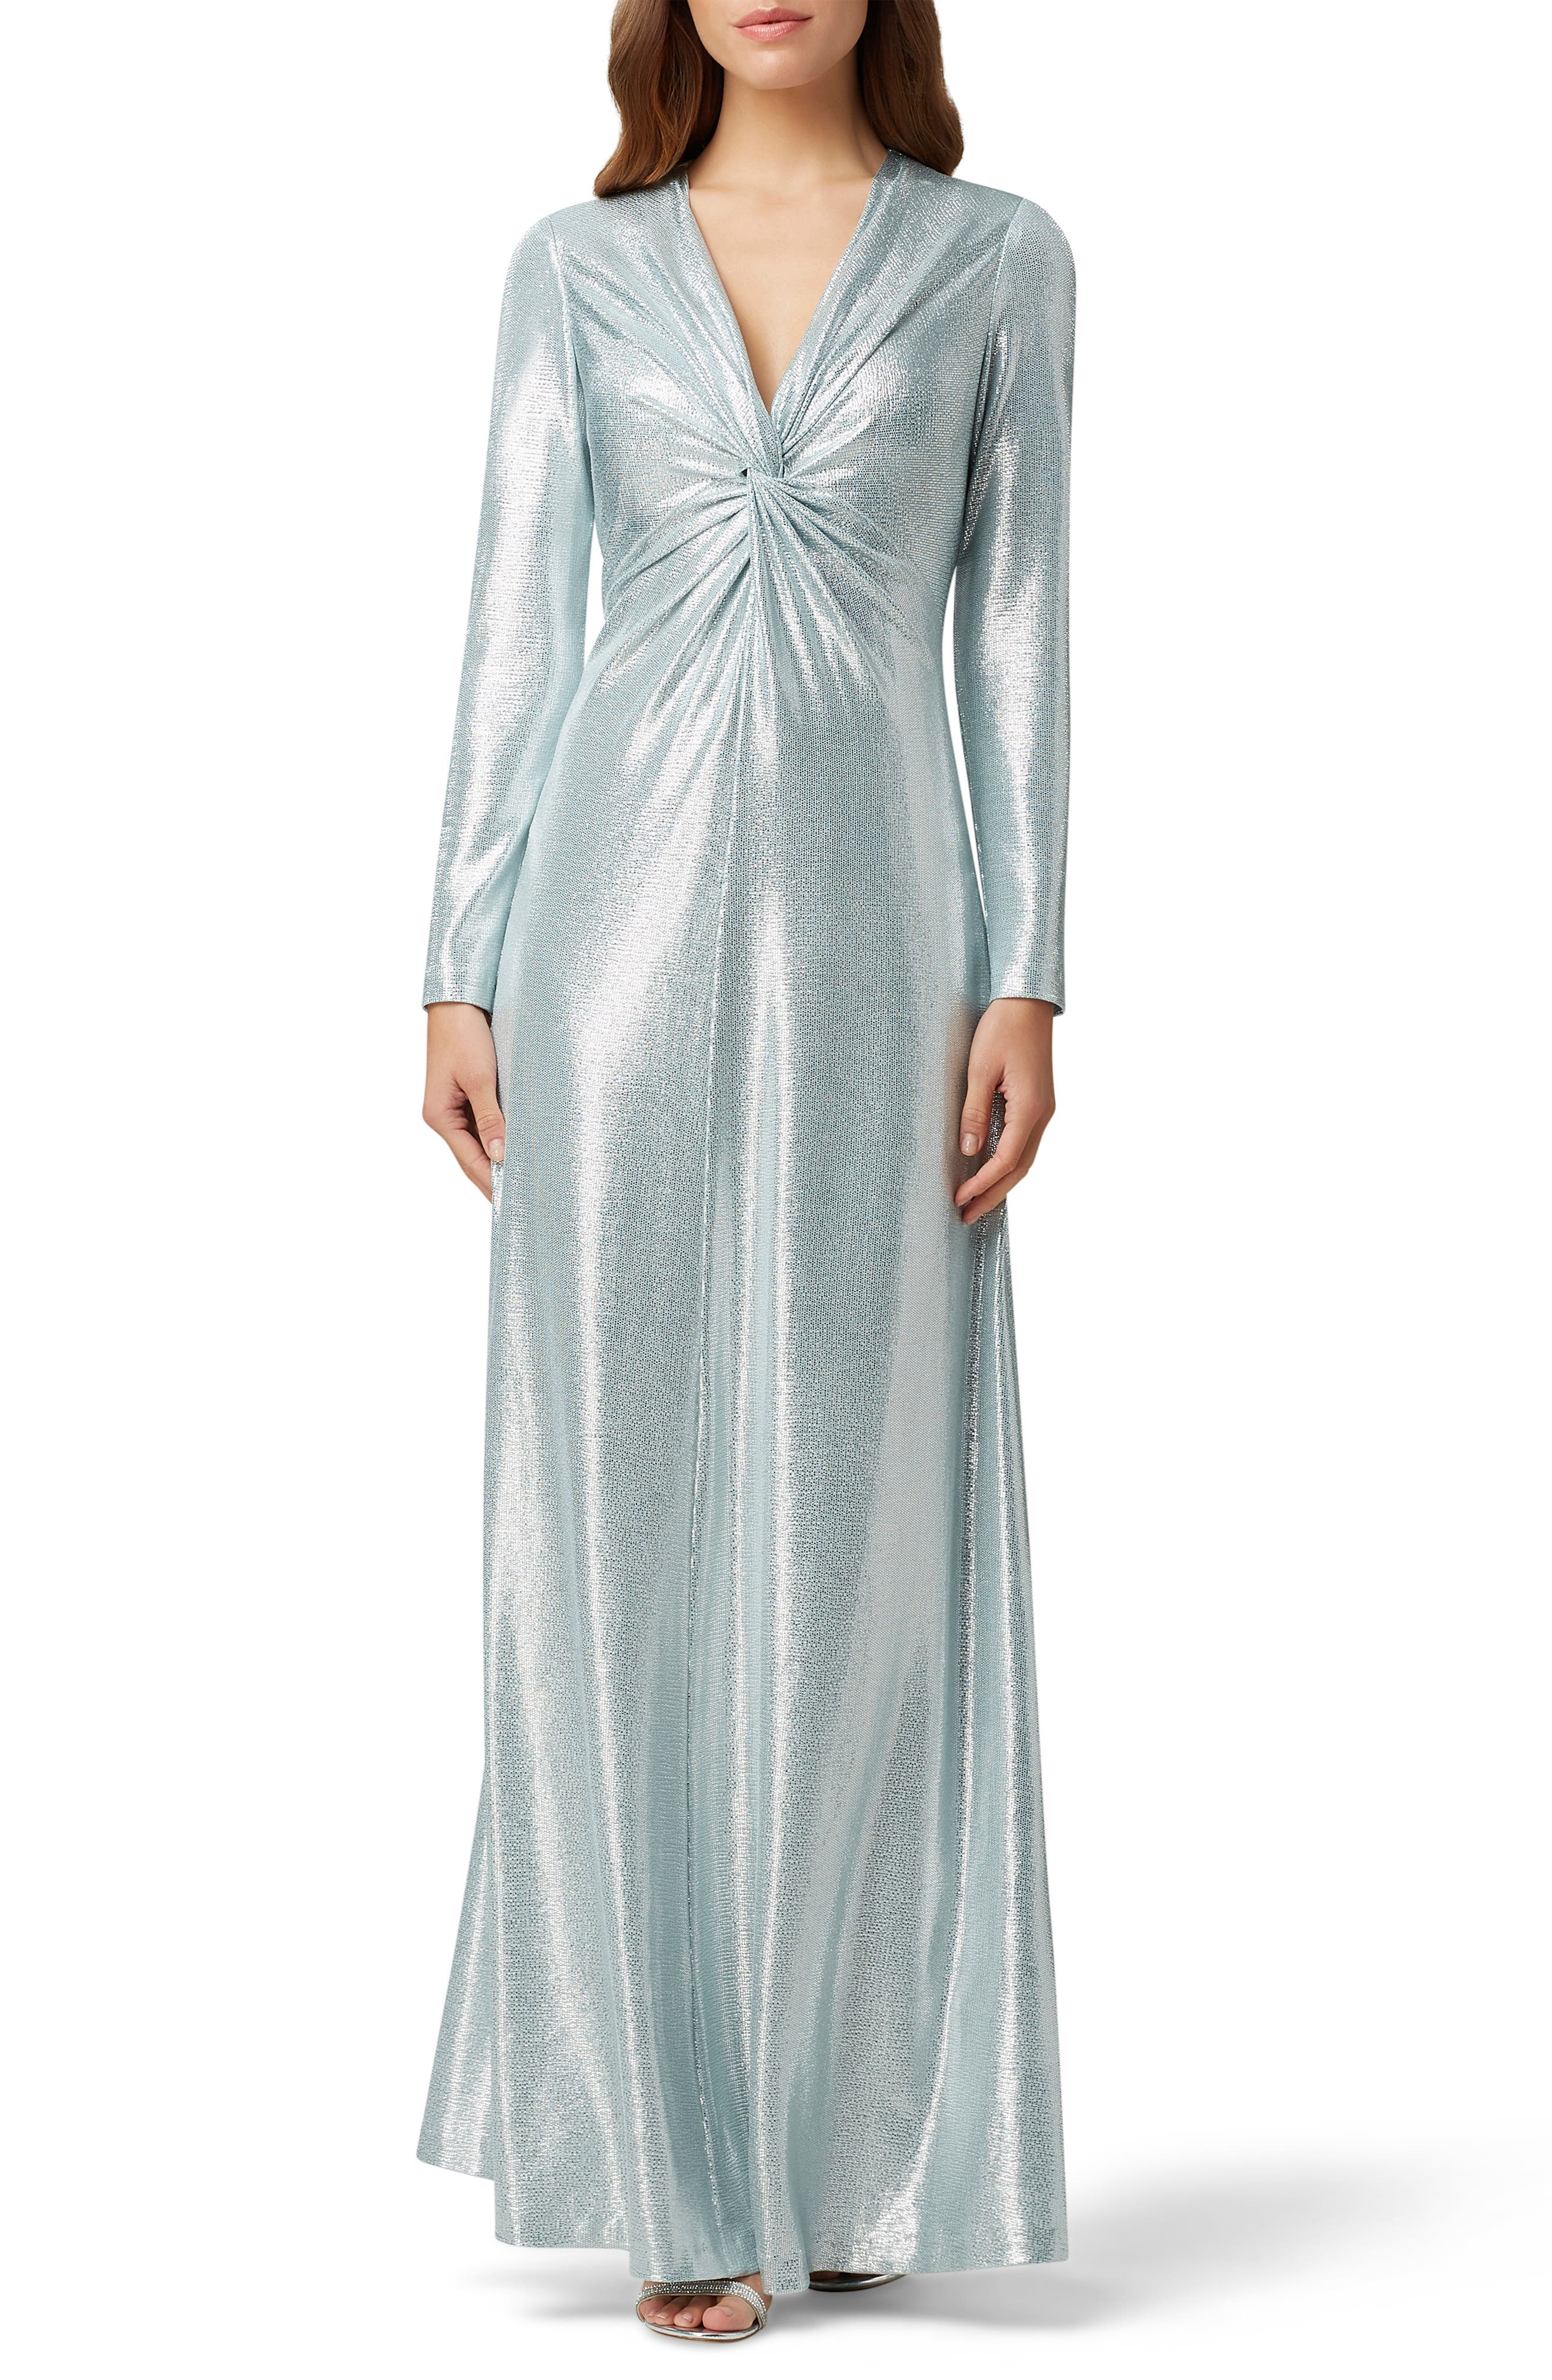 70s Prom, Formal, Evening, Party Dresses Womens Tahari Long Sleeve Twist Metallic Gown $138.10 AT vintagedancer.com